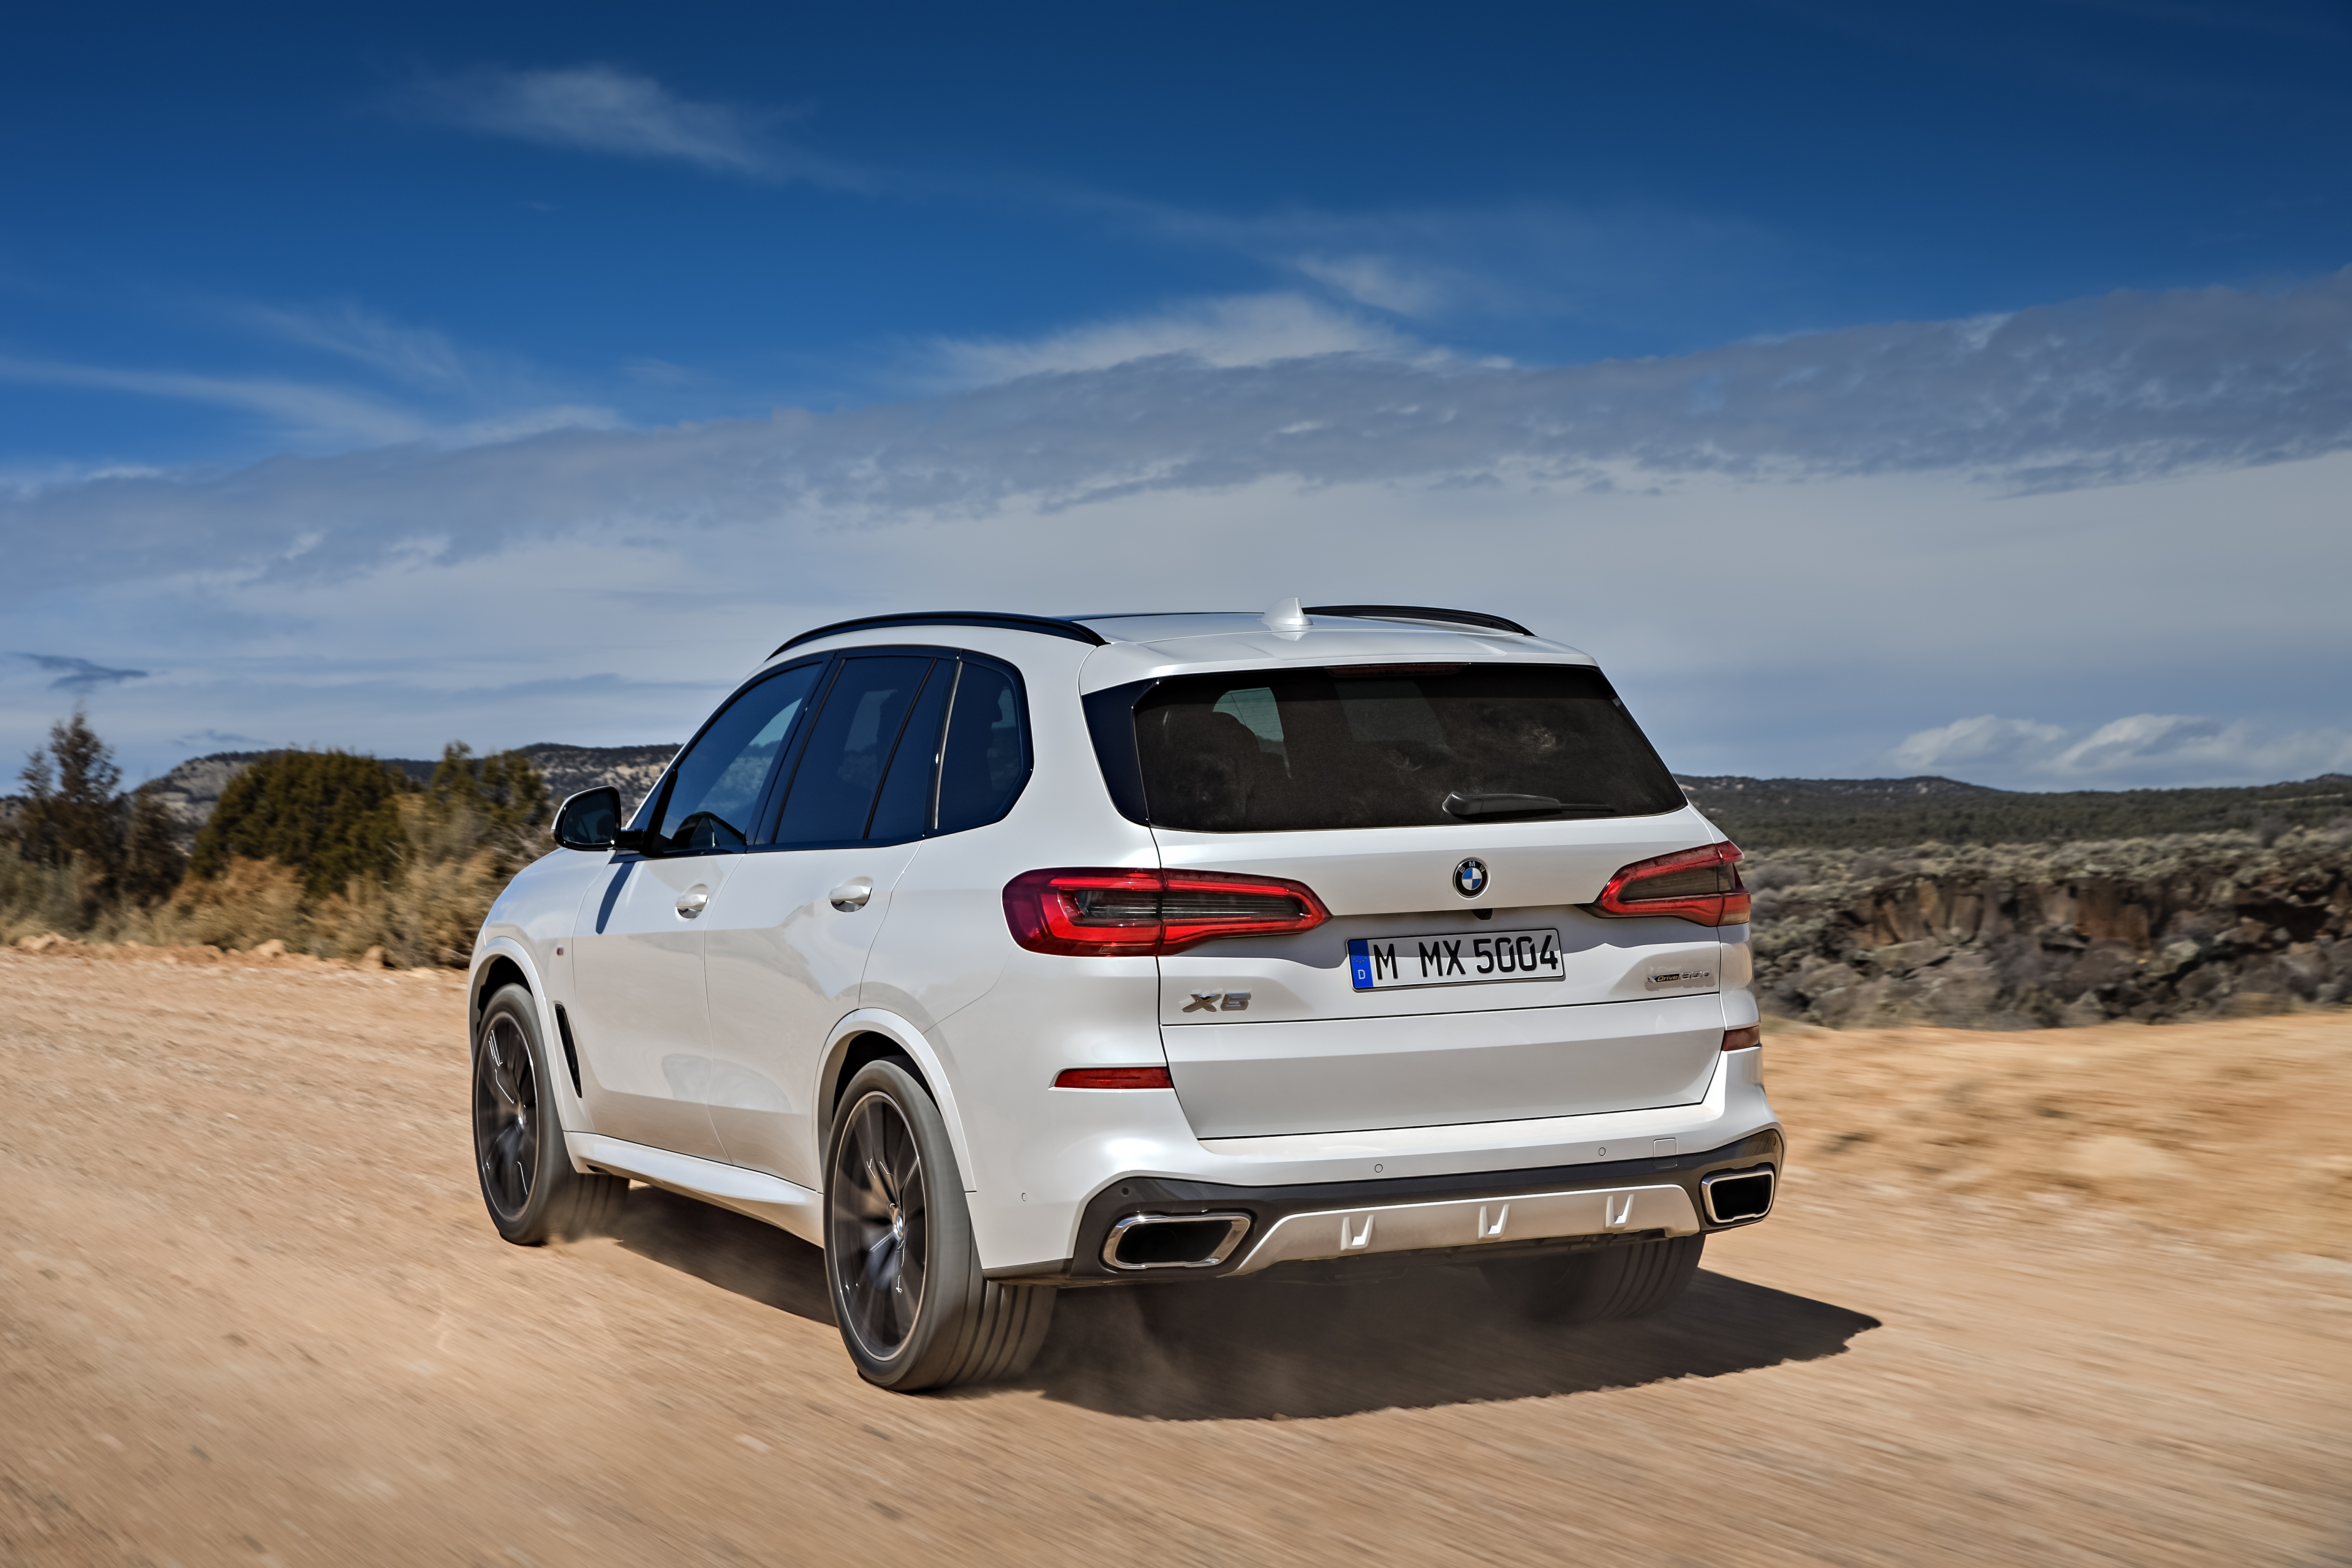 P90304004_highRes_the-all-new-bmw-x5-0.jpg